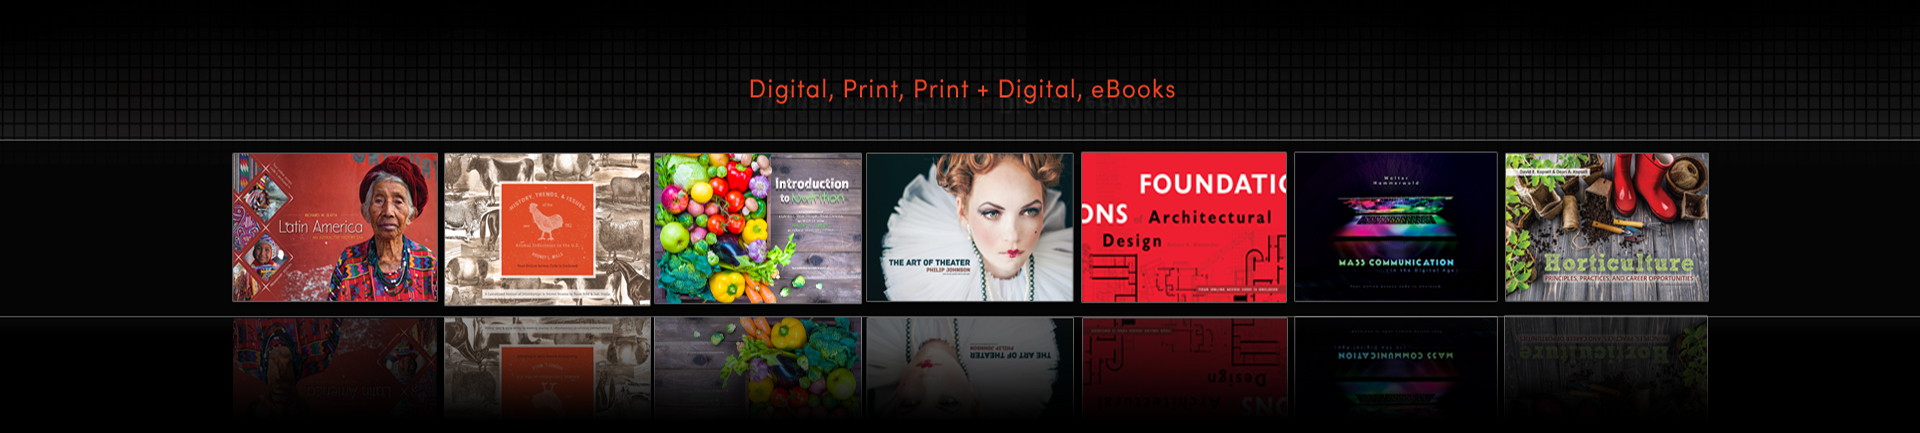 Access cards that GRL has made, digital, print, print and digital, Ebooks